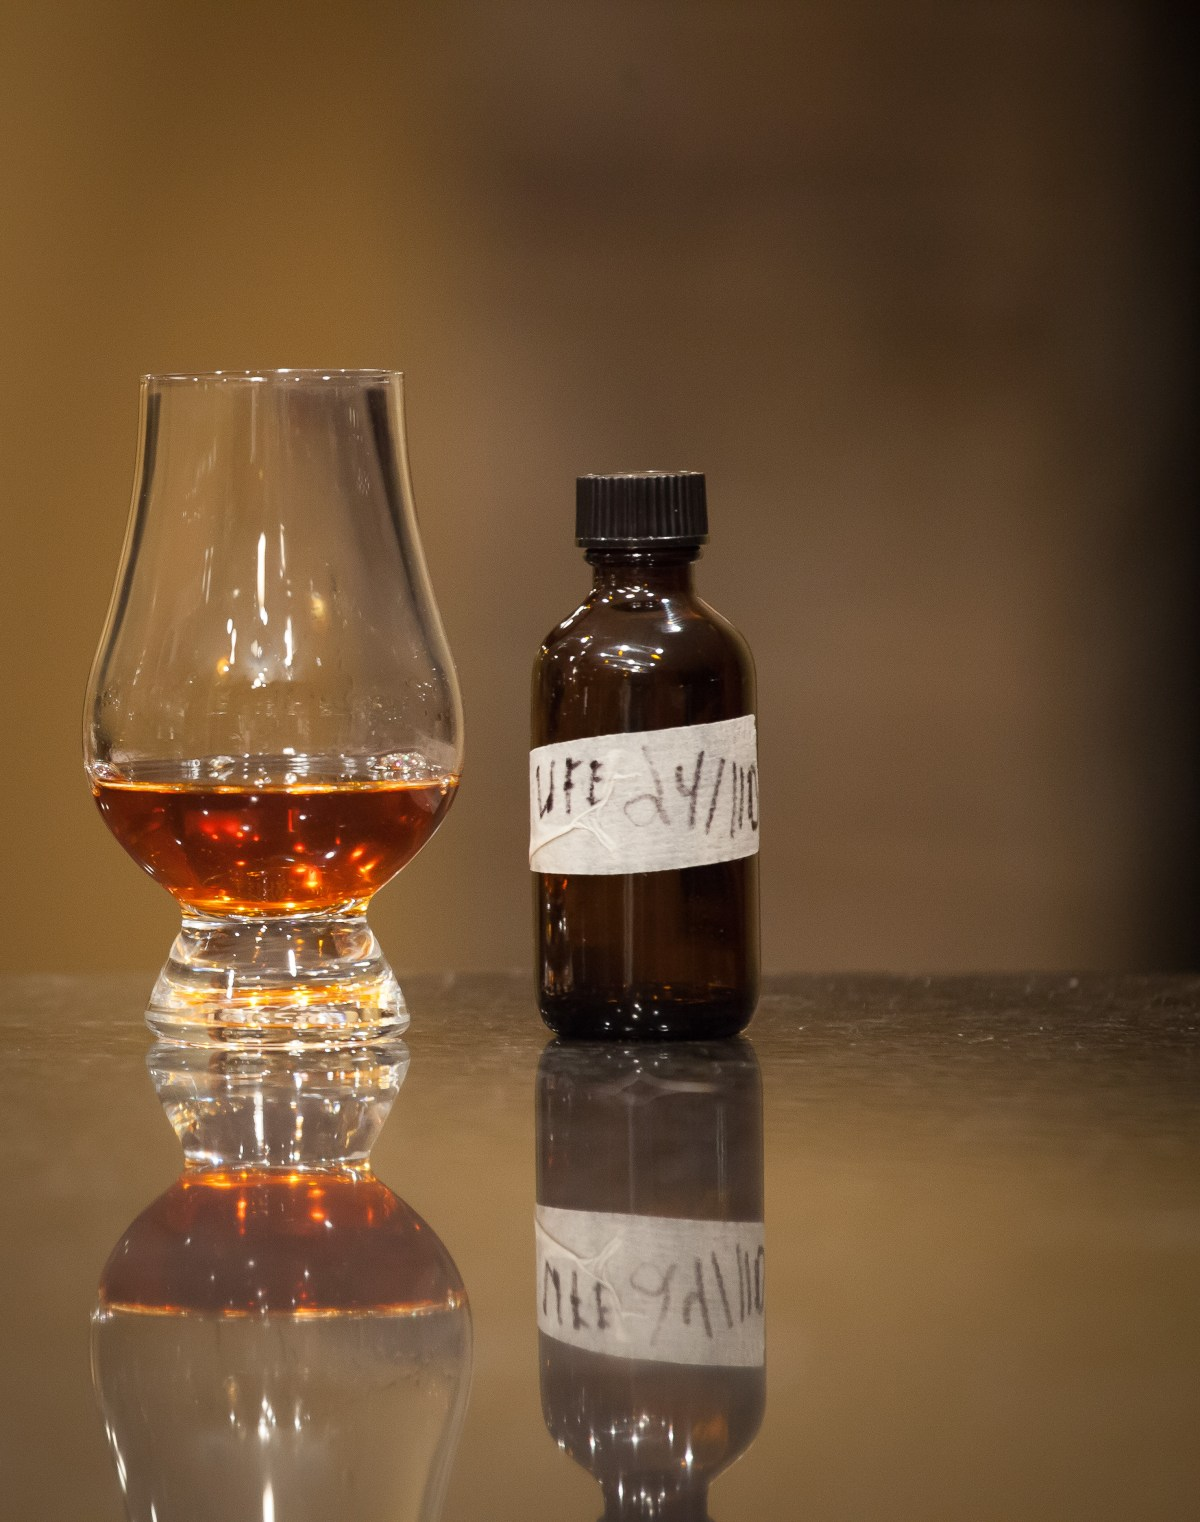 Willett 24/110 Rye Review